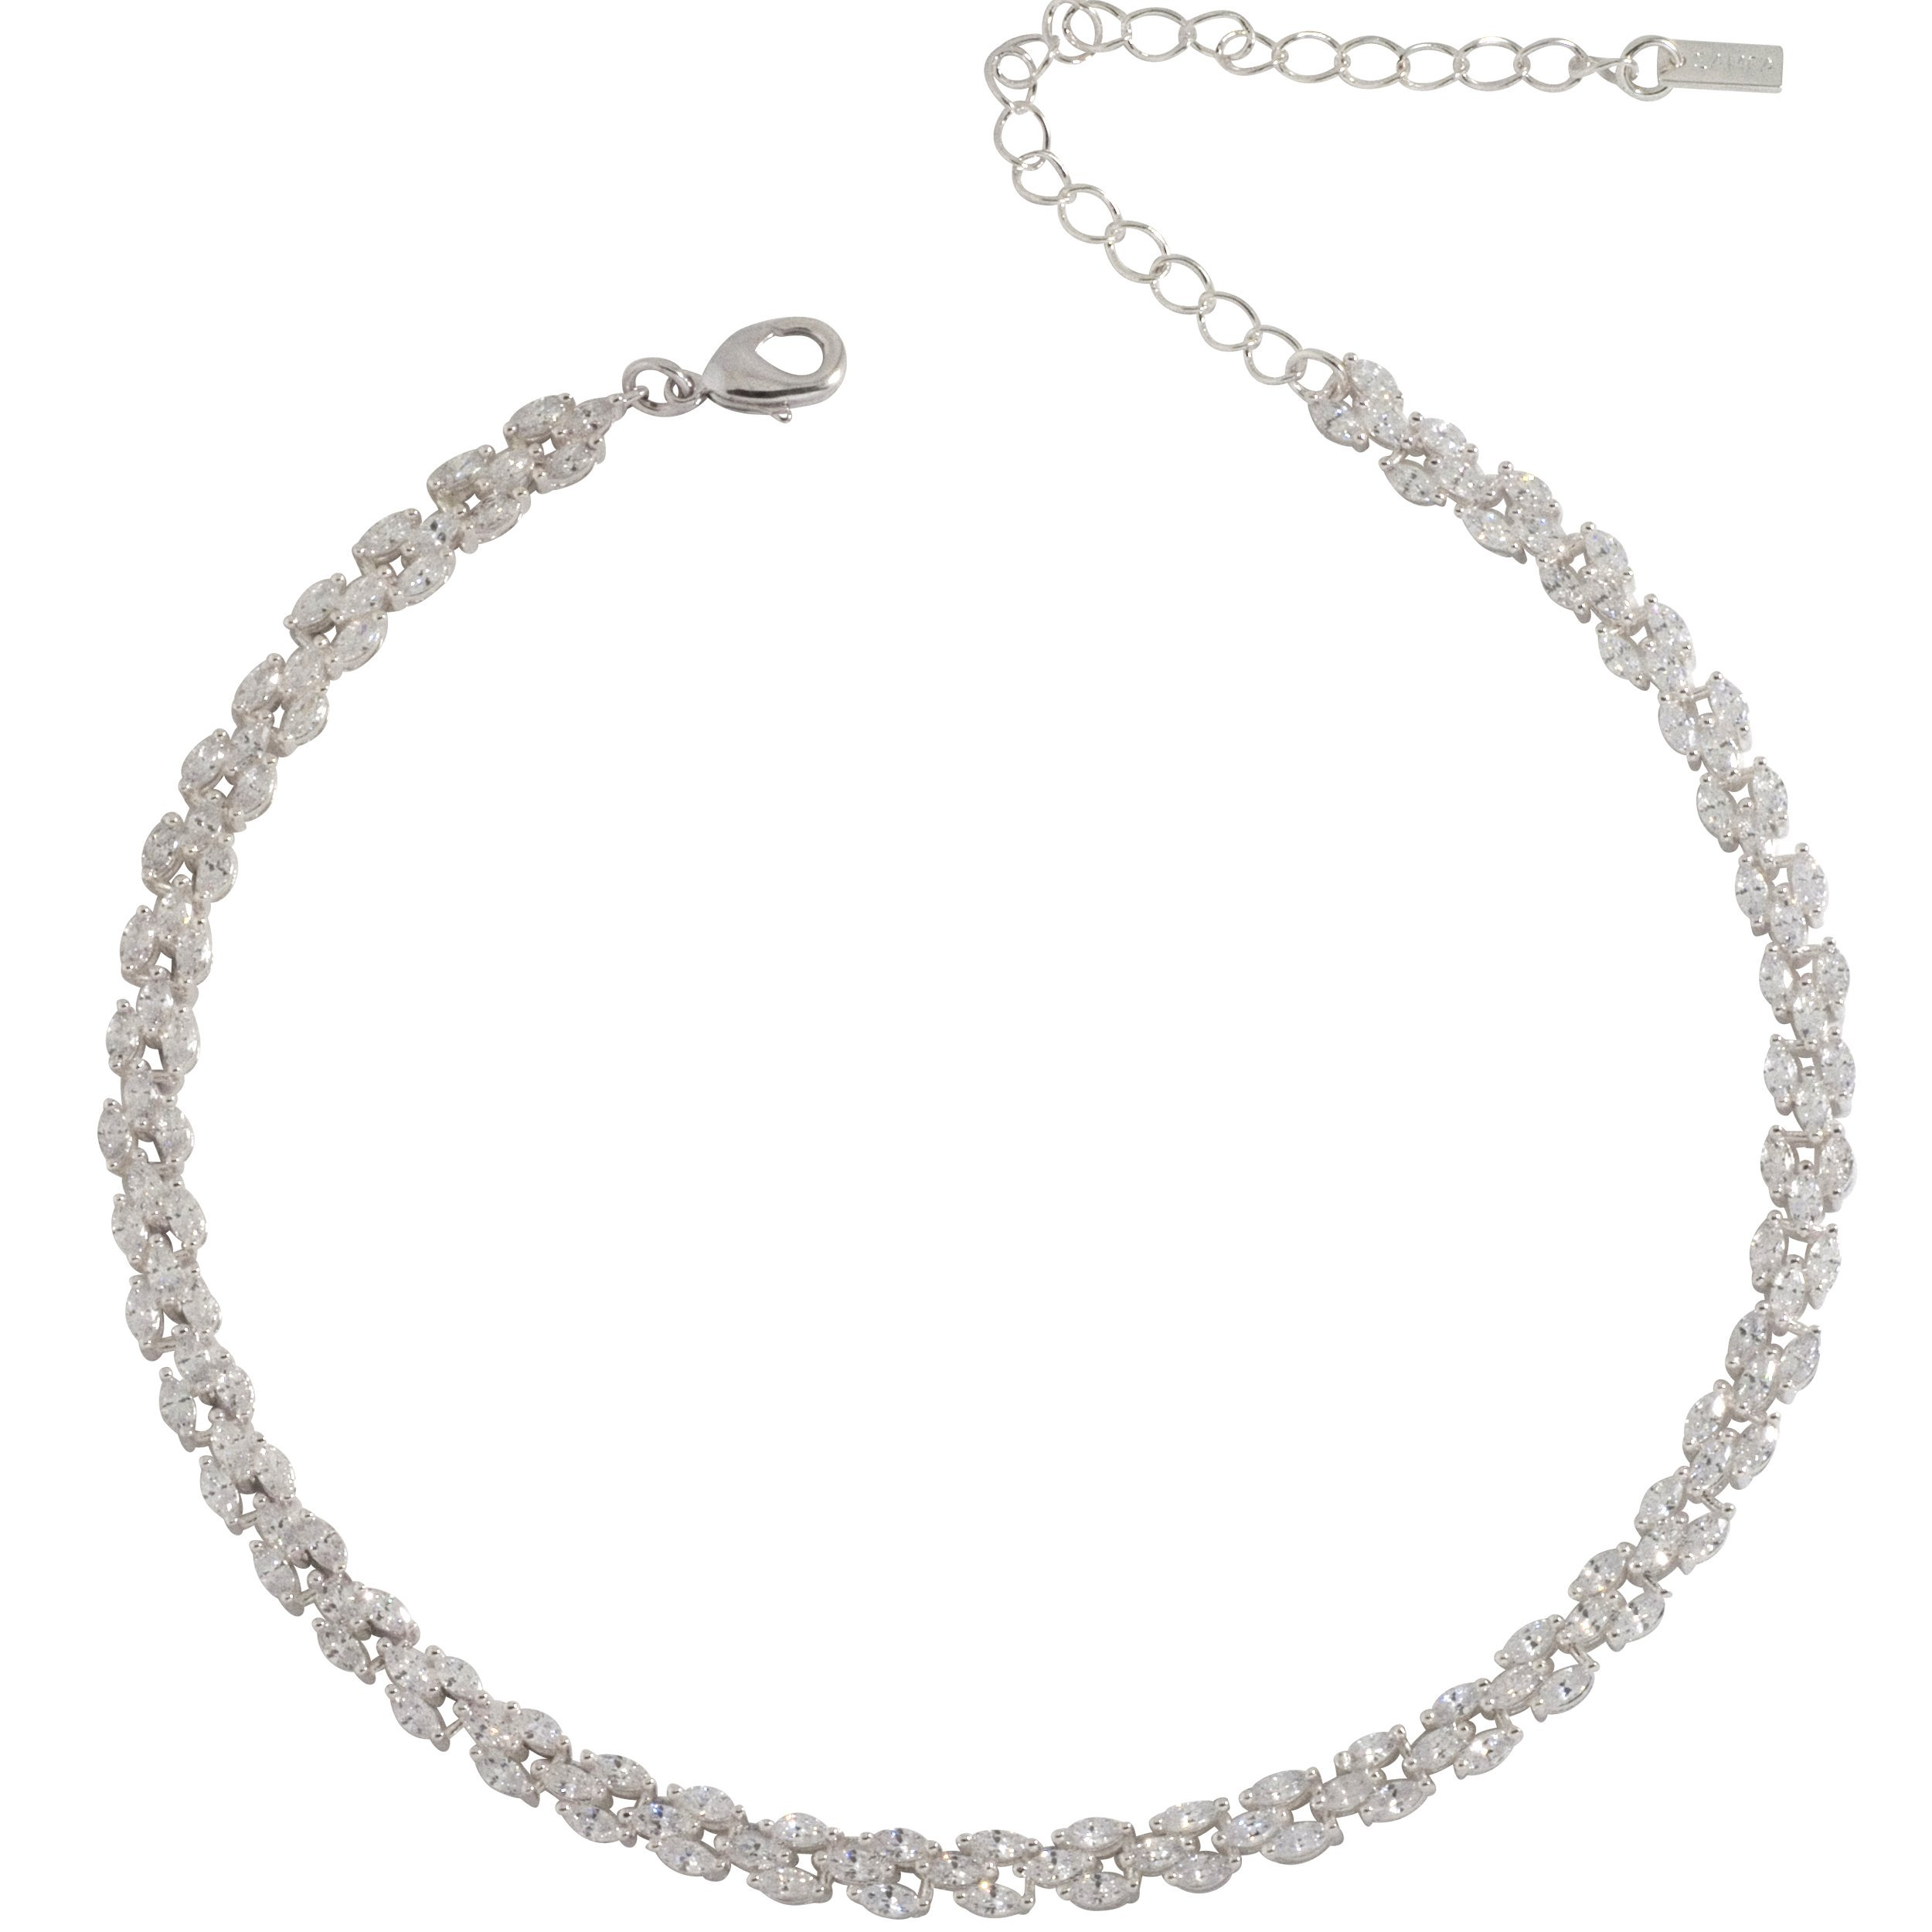 Samfa Style Marquis Diamond Choker Necklace with Extension (Silver)